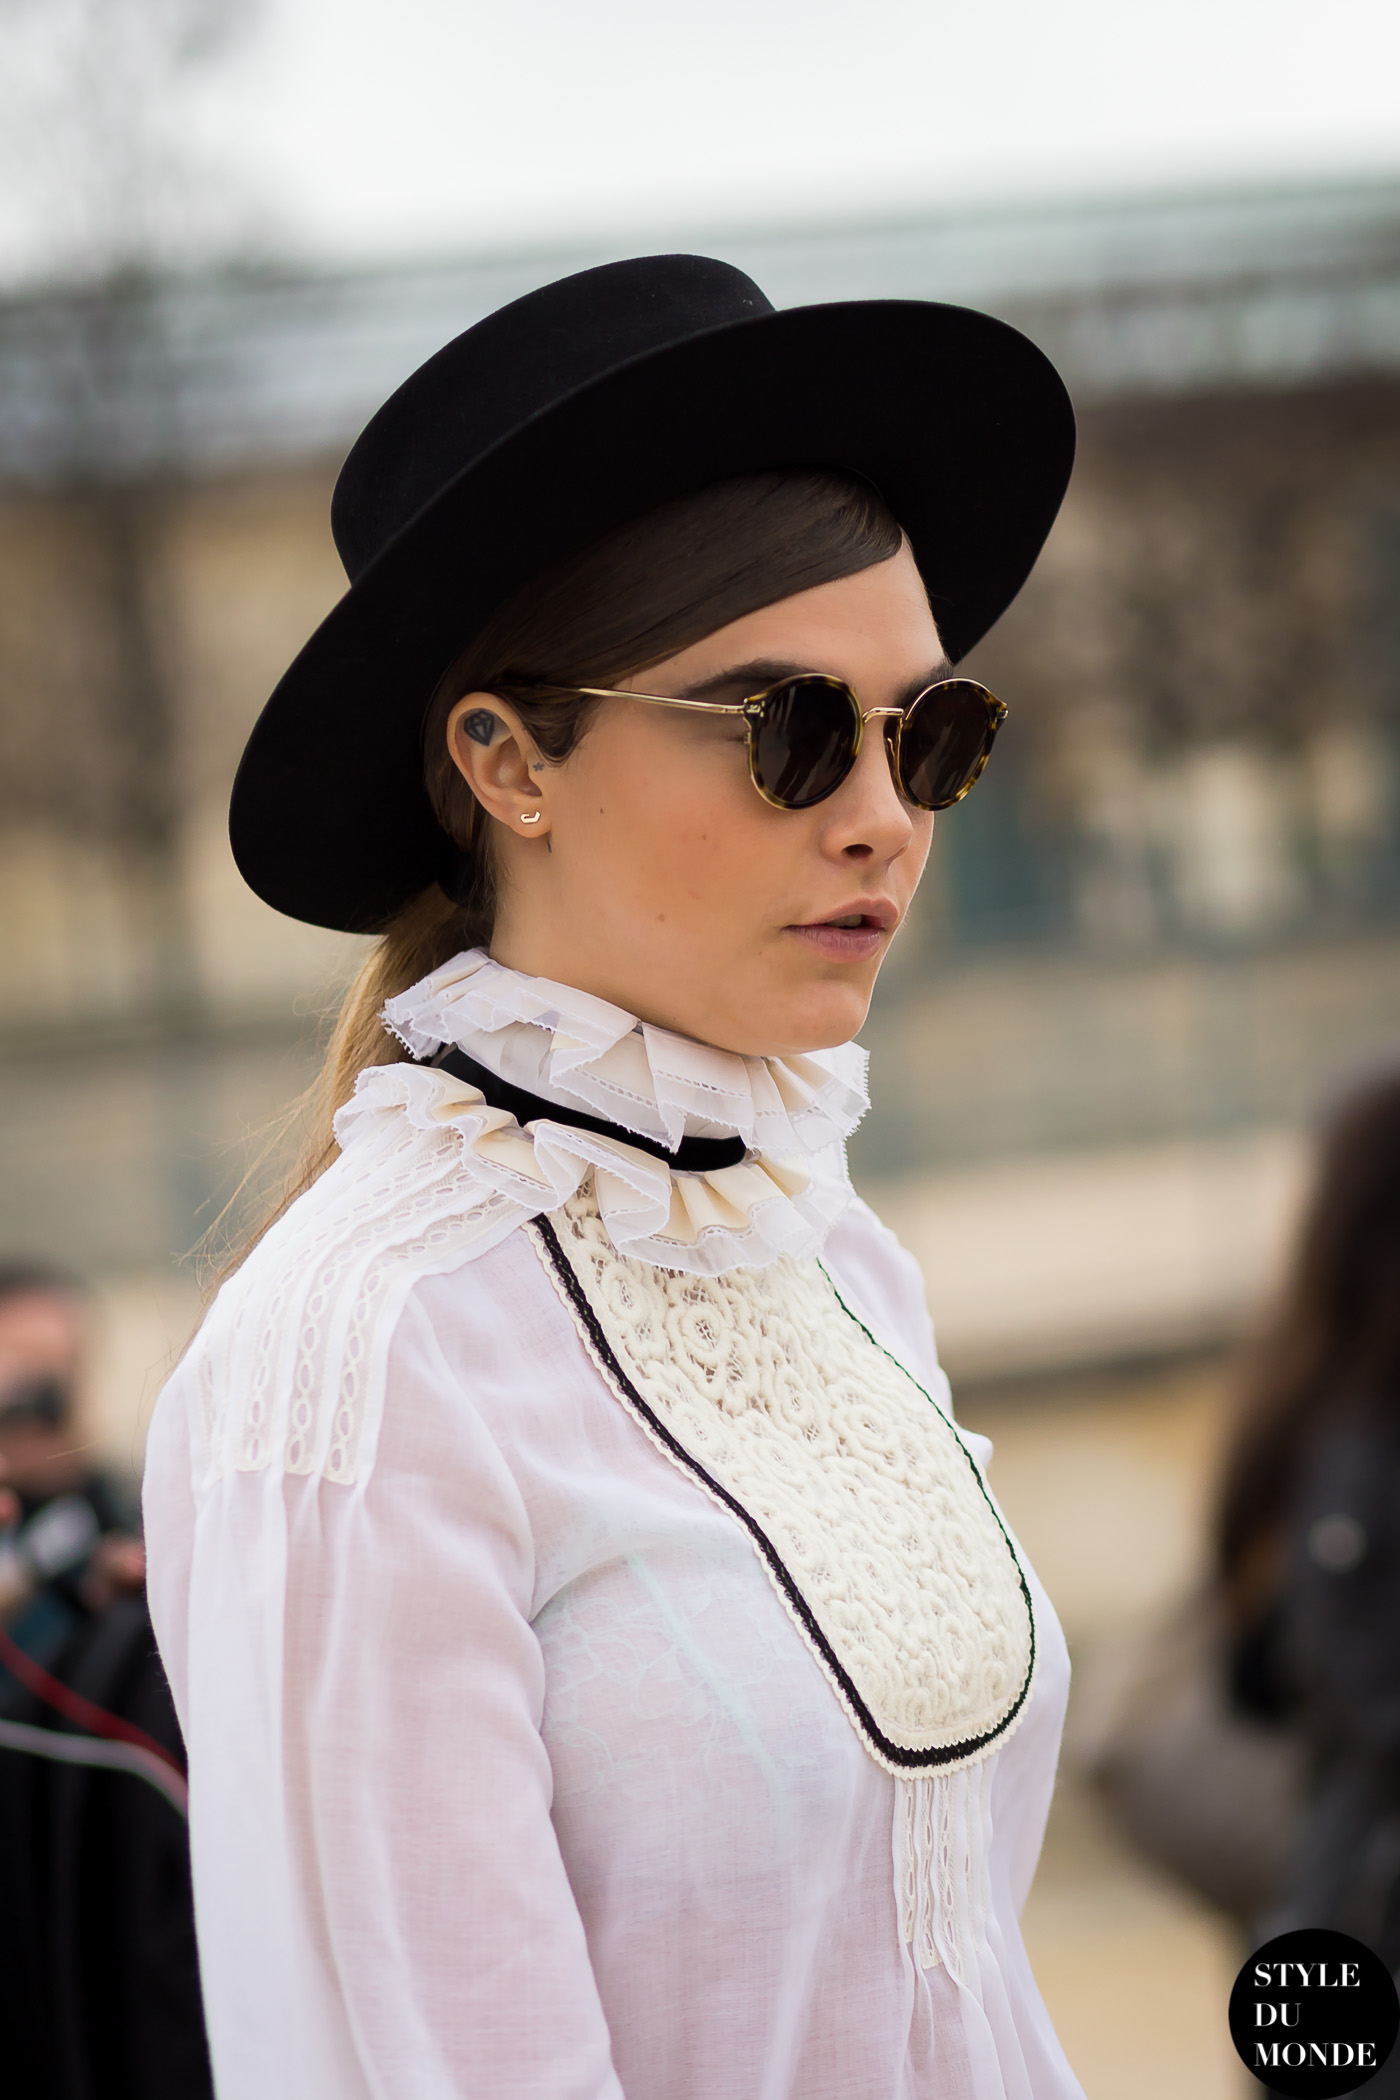 Cara Delevingne Street Style Street Fashion Streetsnaps by STYLEDUMONDE Street Style Fashion Blog